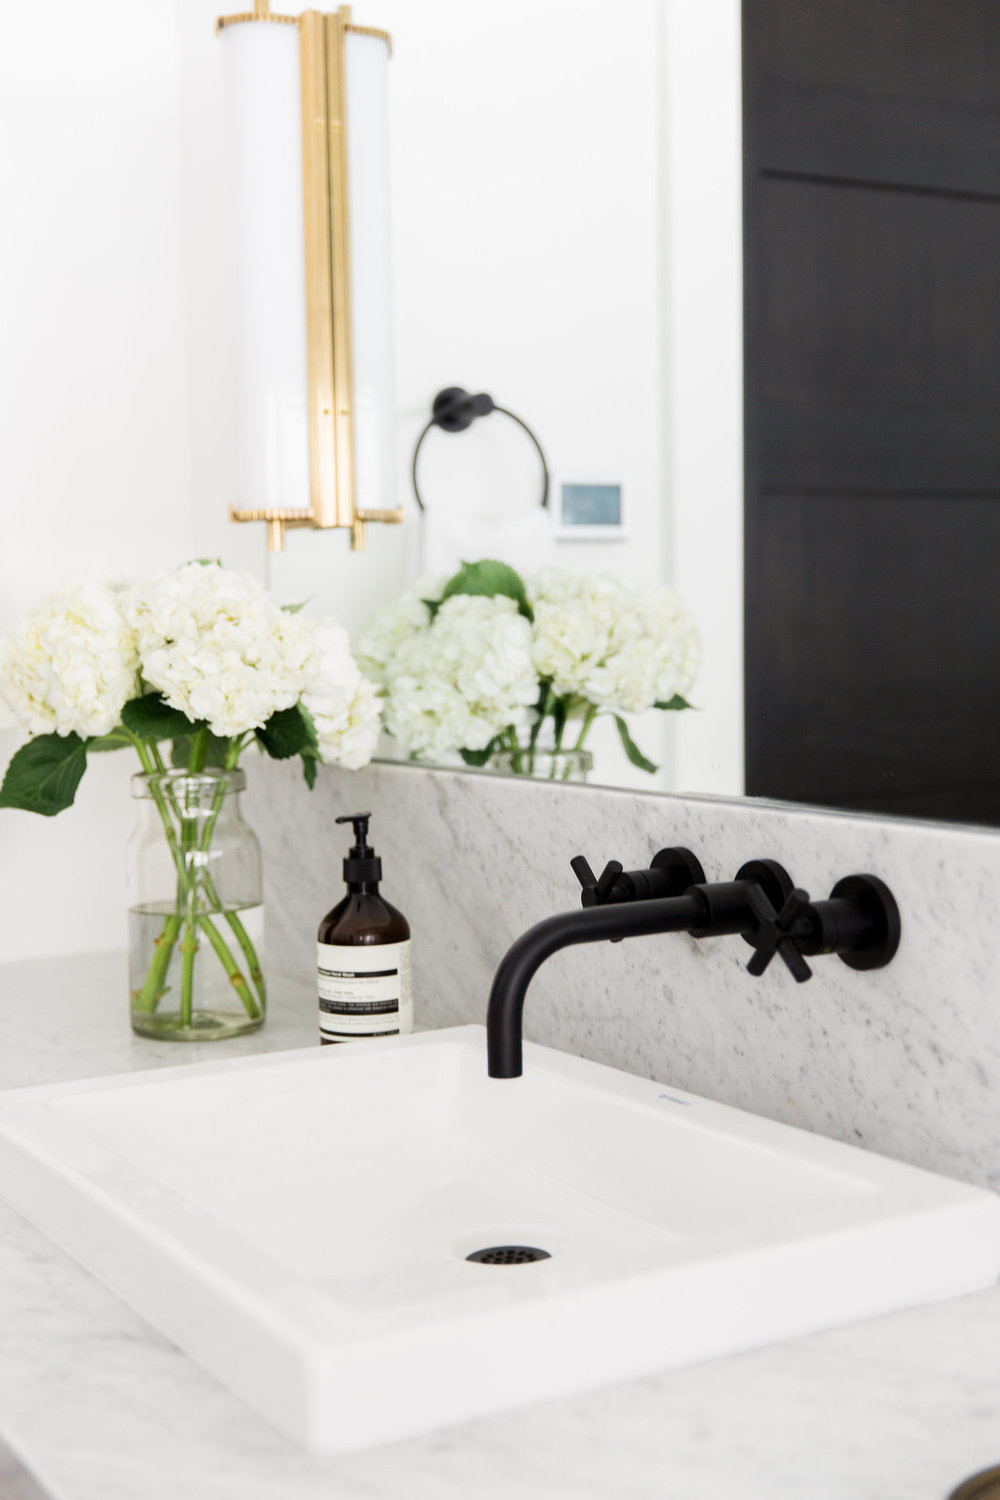 10 Swanky Faucets To Check Out For A Bath Remodel Hunker